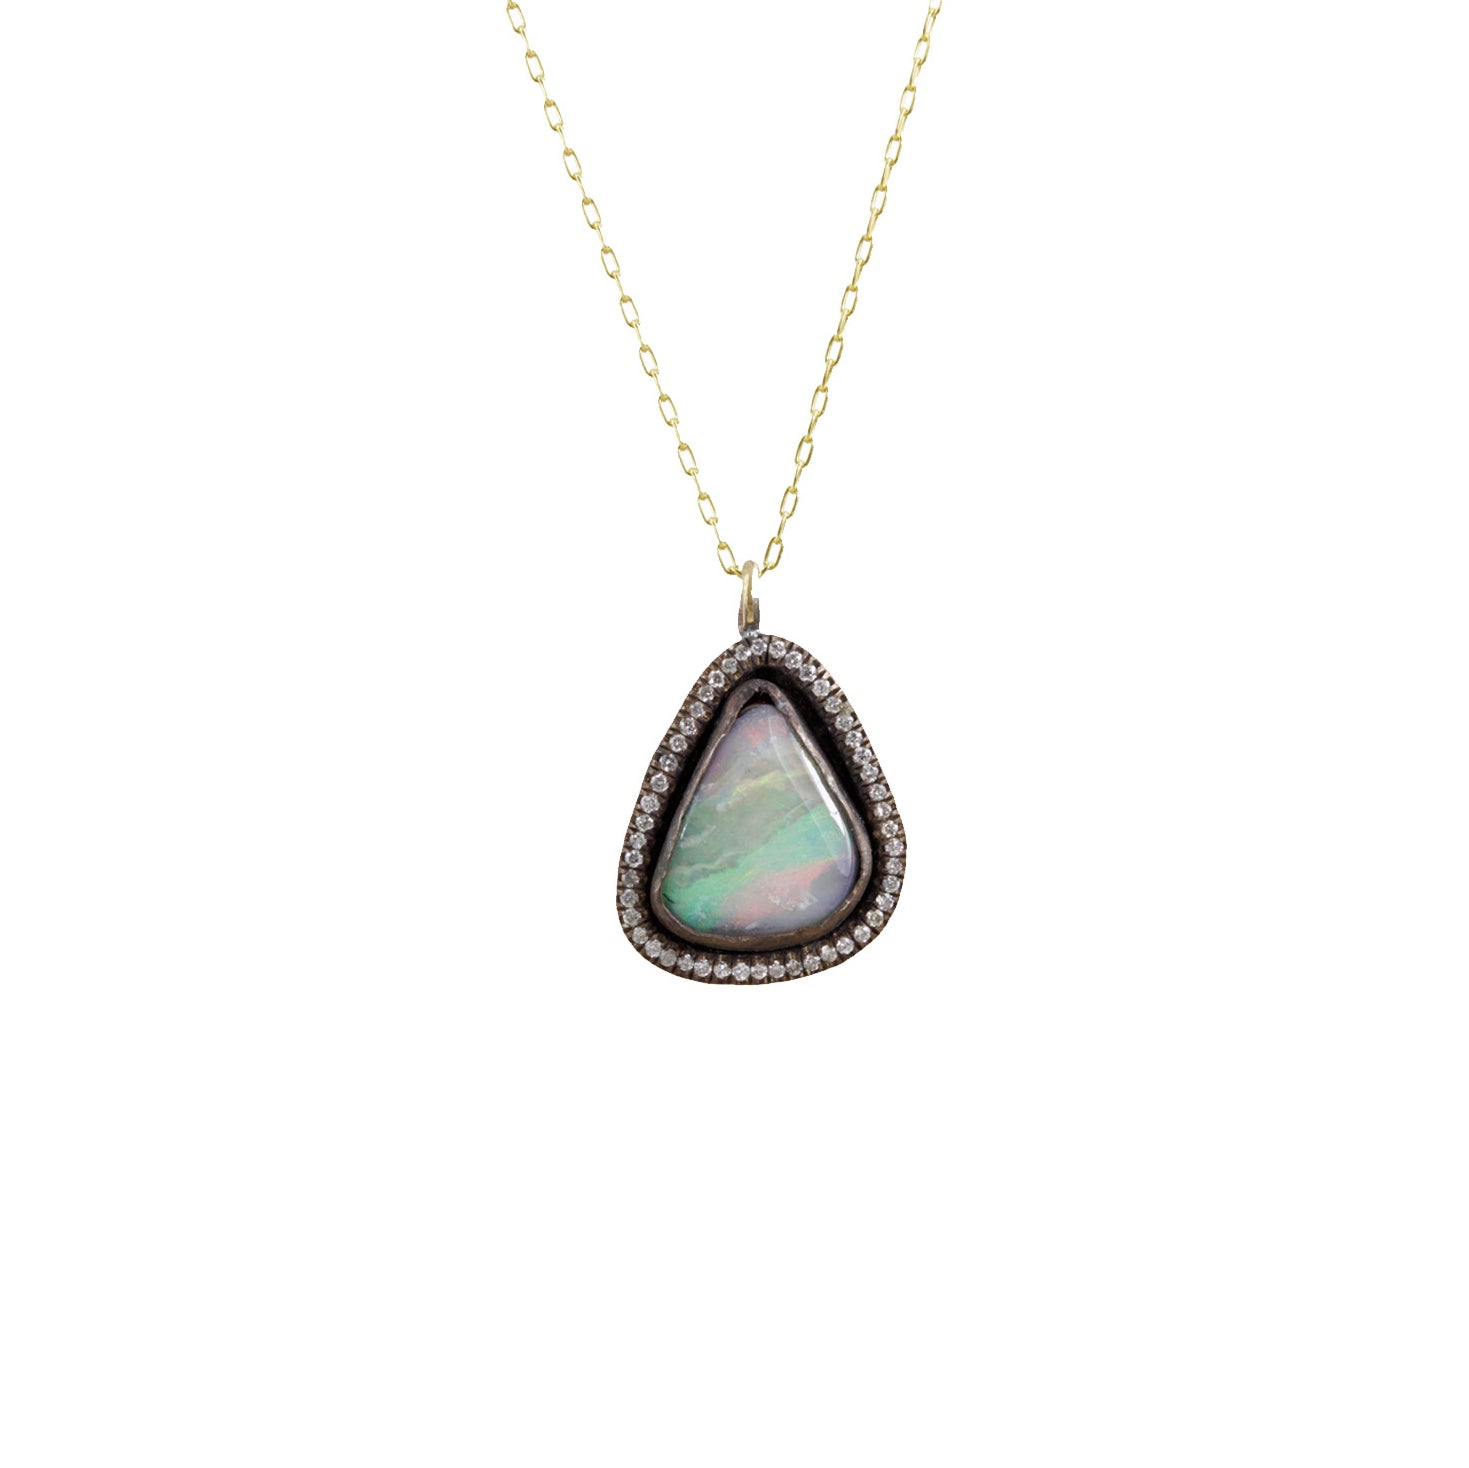 Boulder Opal and Diamond Pendant Necklace - Margery Hirschey - Necklaces | Broken English Jewelry